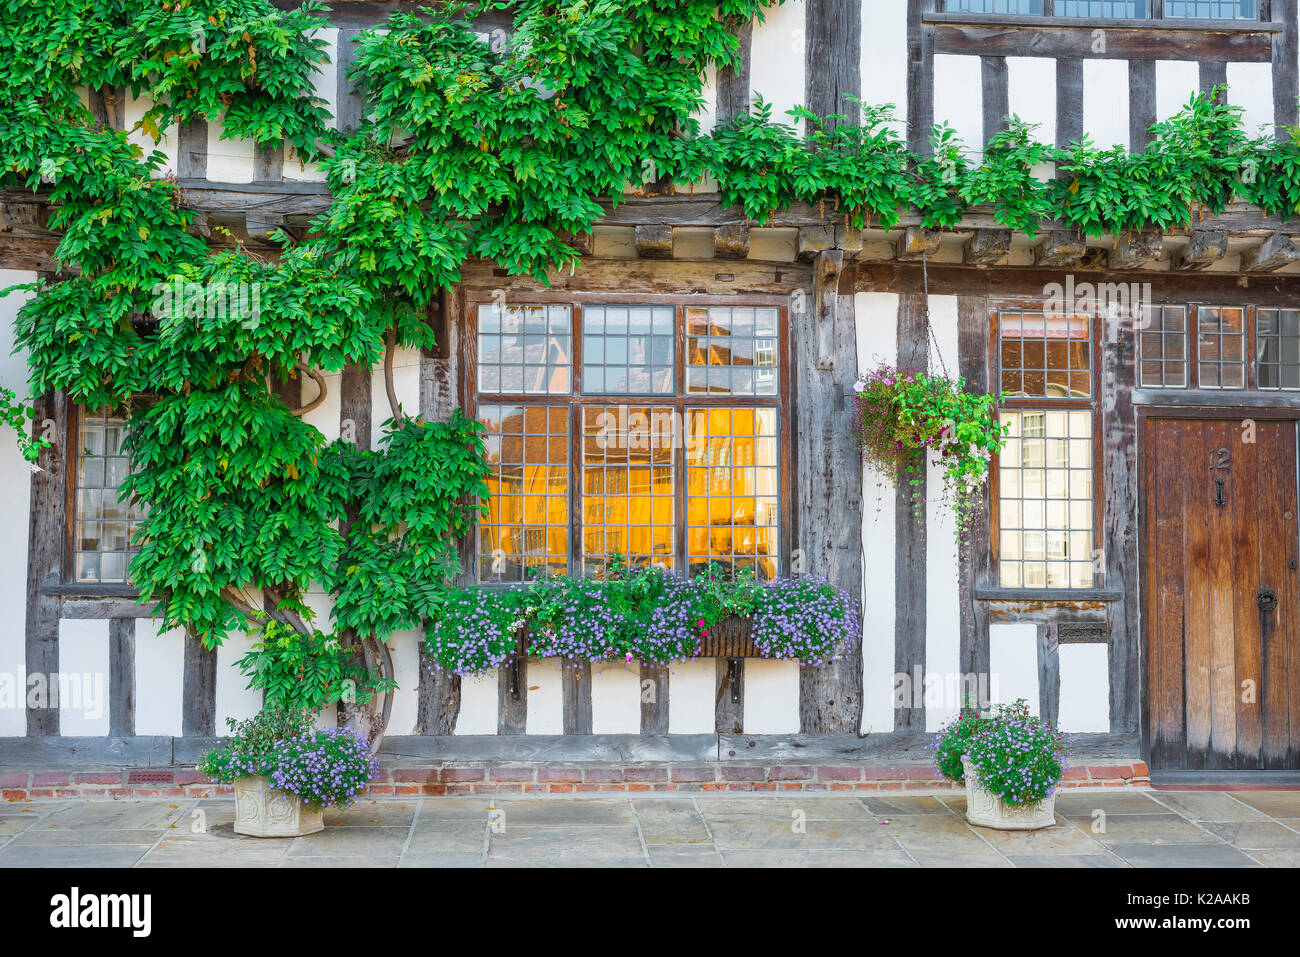 Lavenham Suffolk house colour, exterior detail of a medieval half timbered building sited in Market Square Lavenham, Suffolk, England. - Stock Image